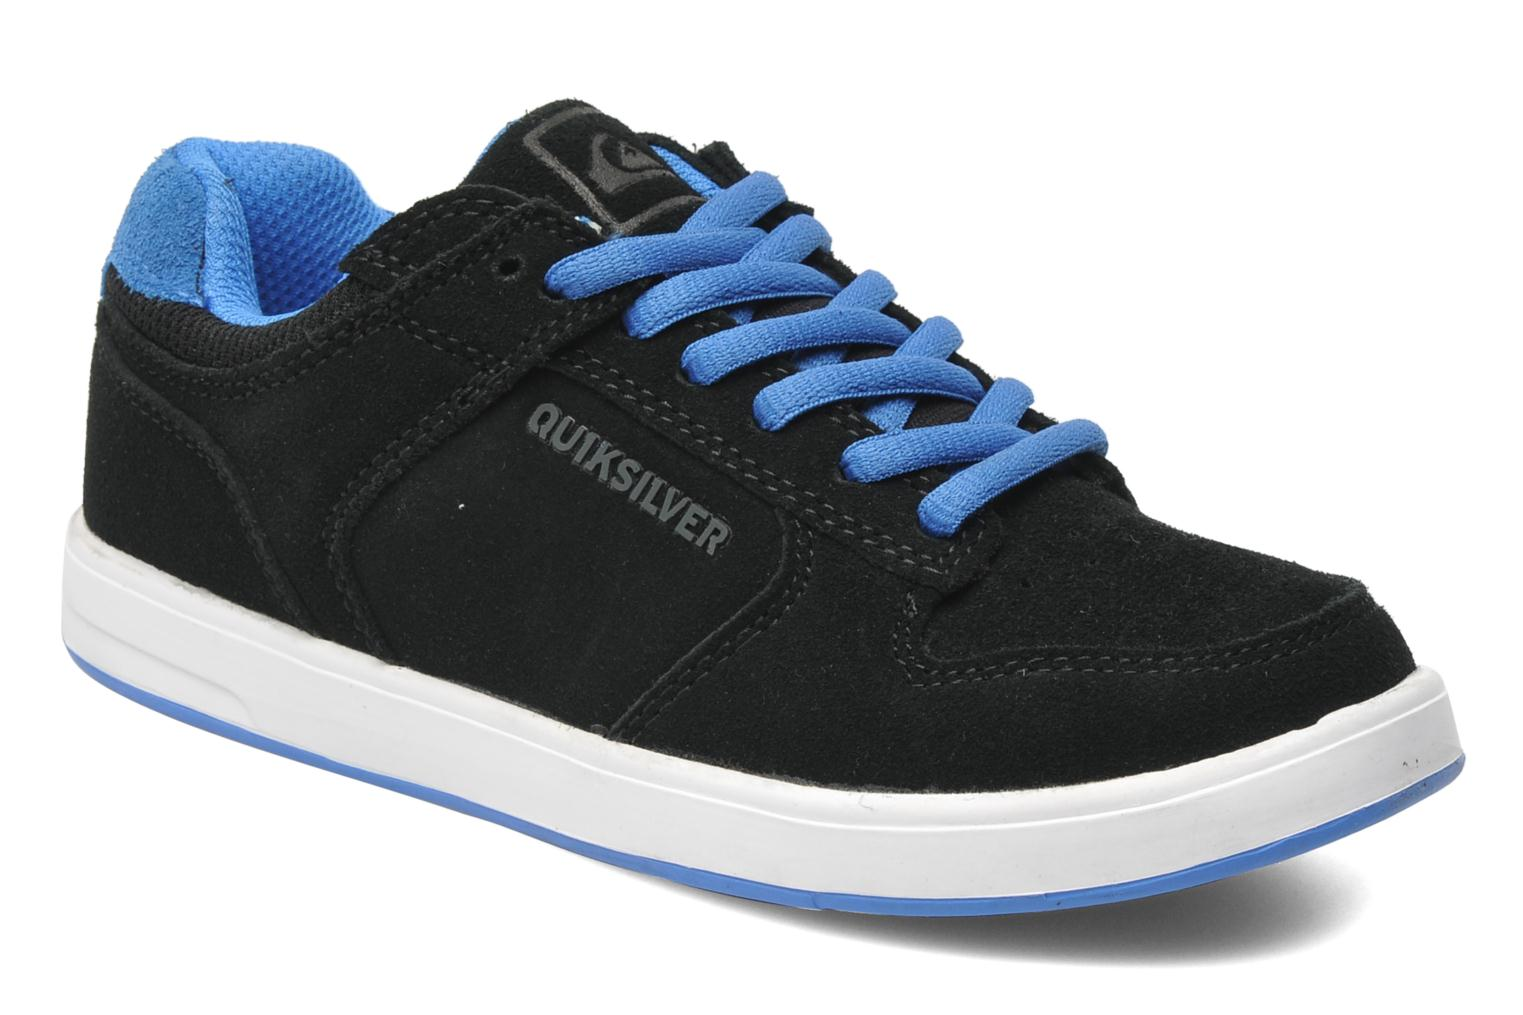 LITTLE BURNSIDE 2 Black/white/blue